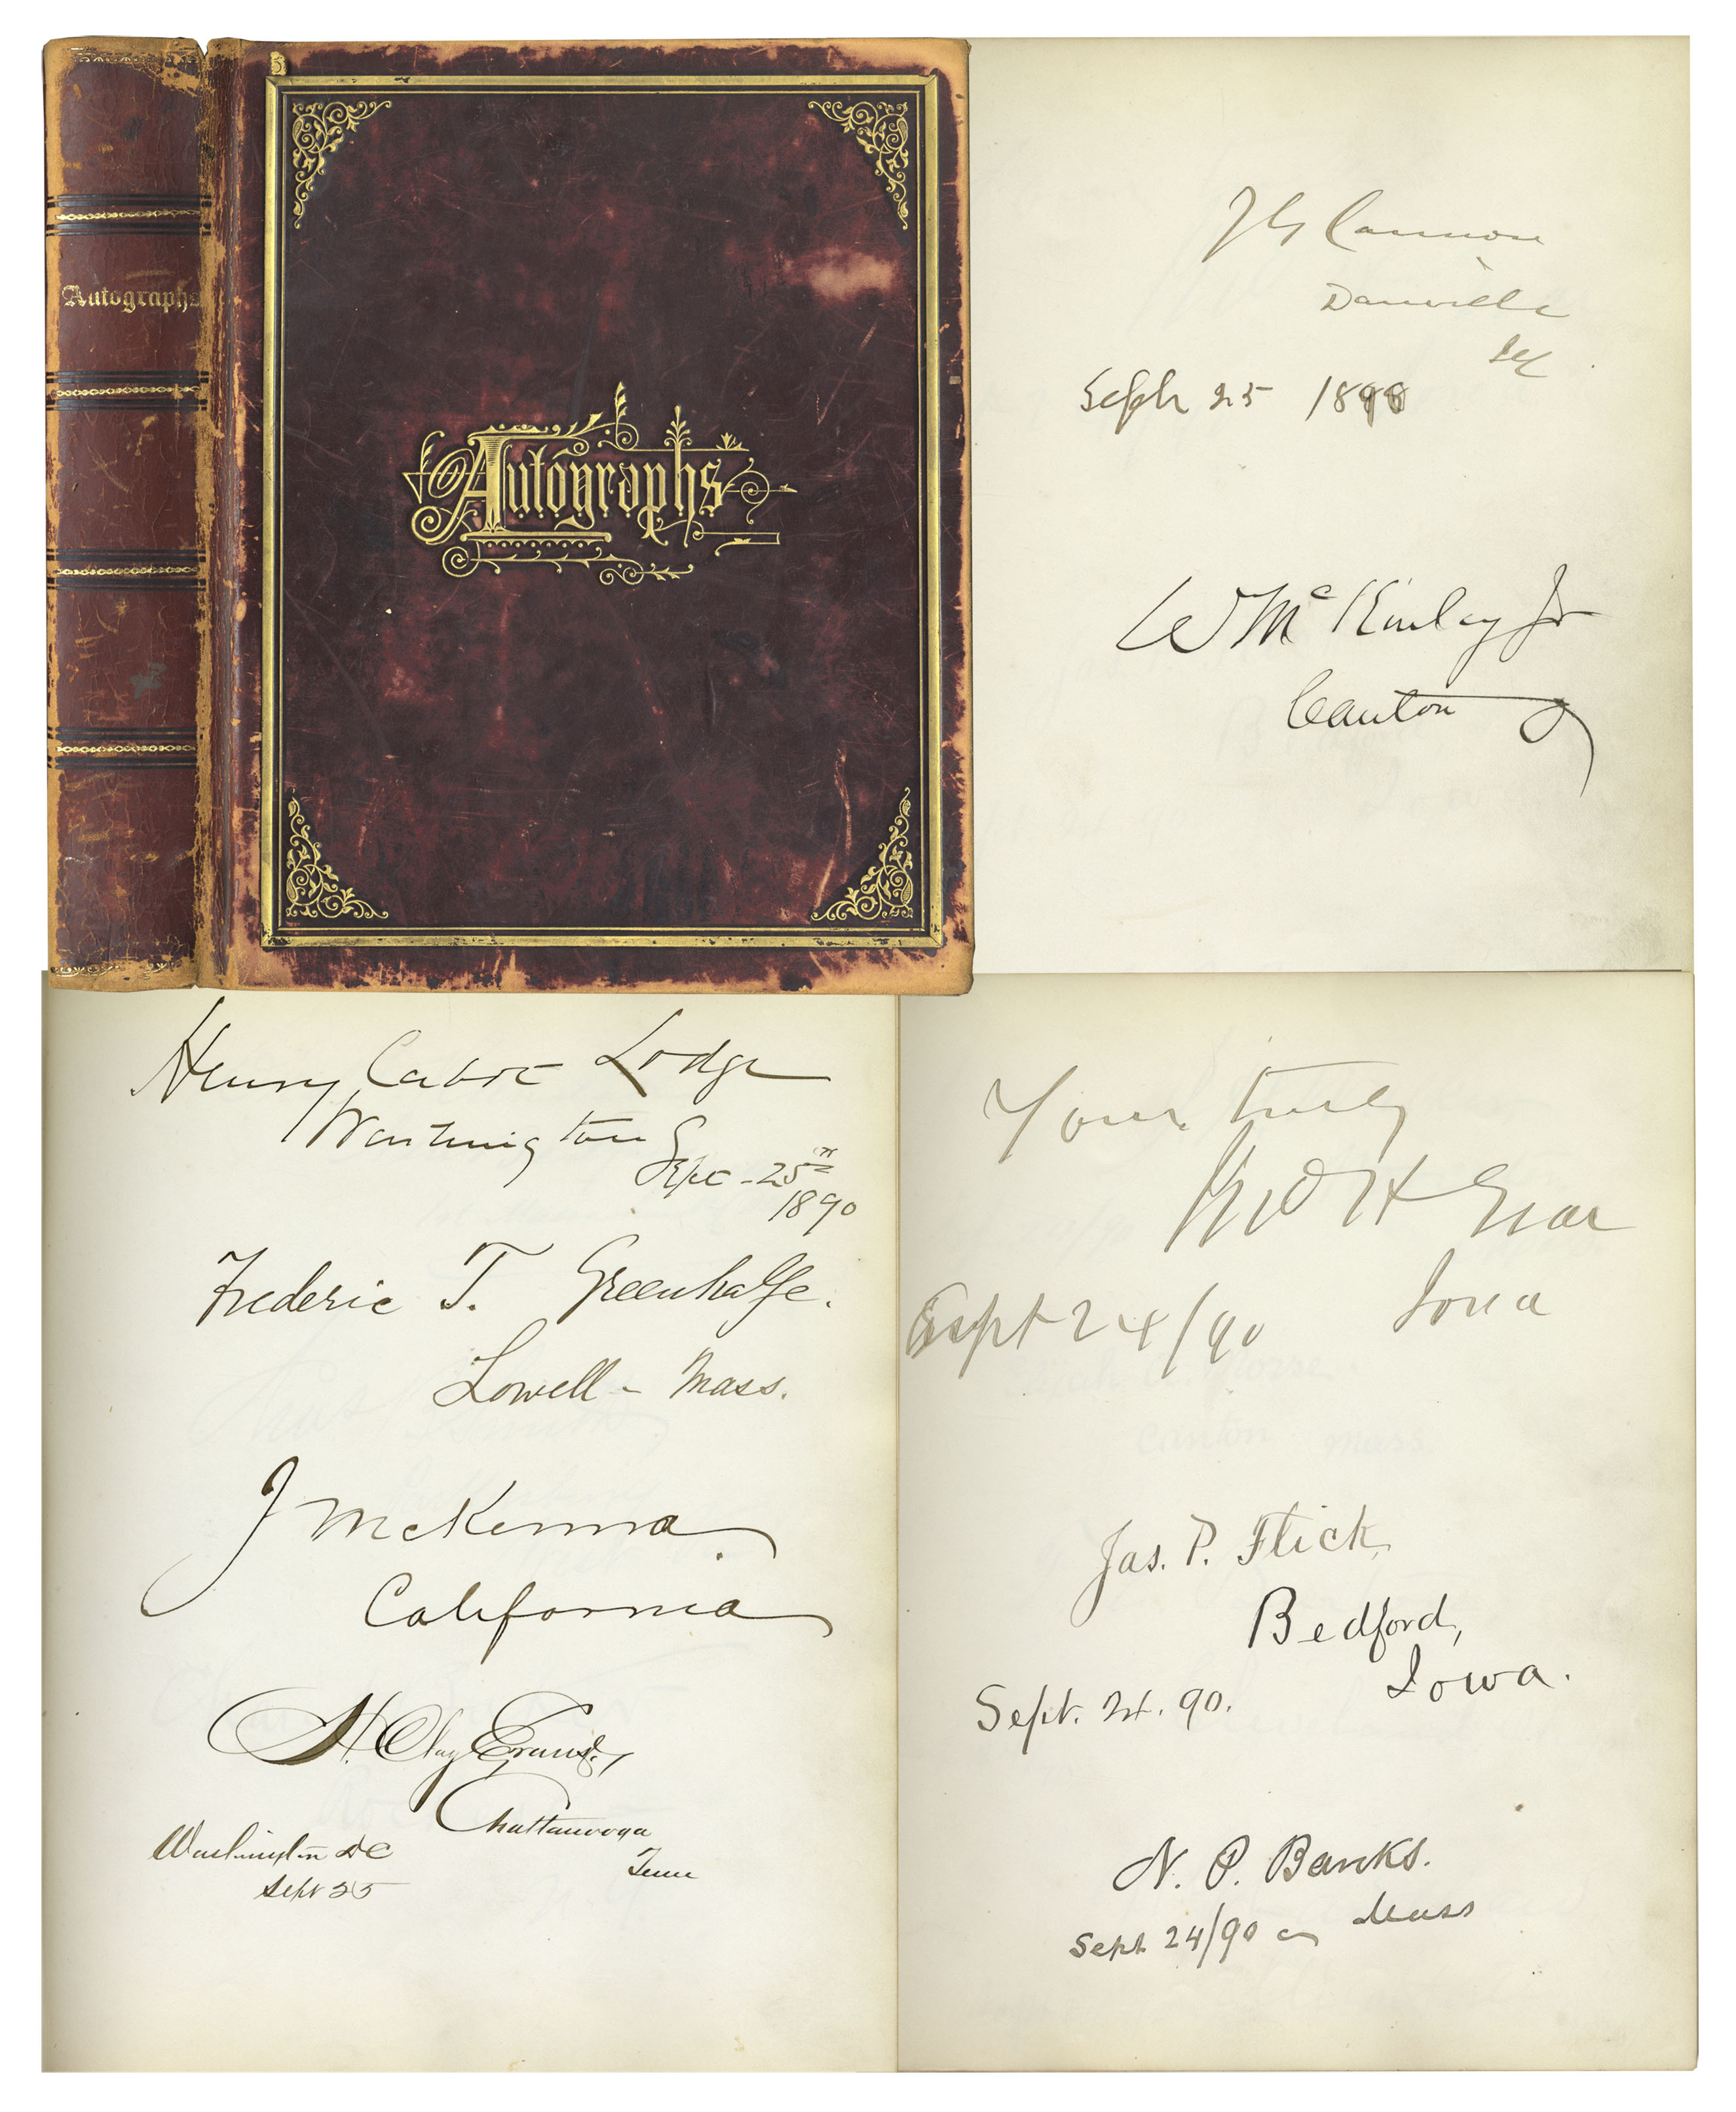 lot detail 19th century autograph book signed by 153 luminaries